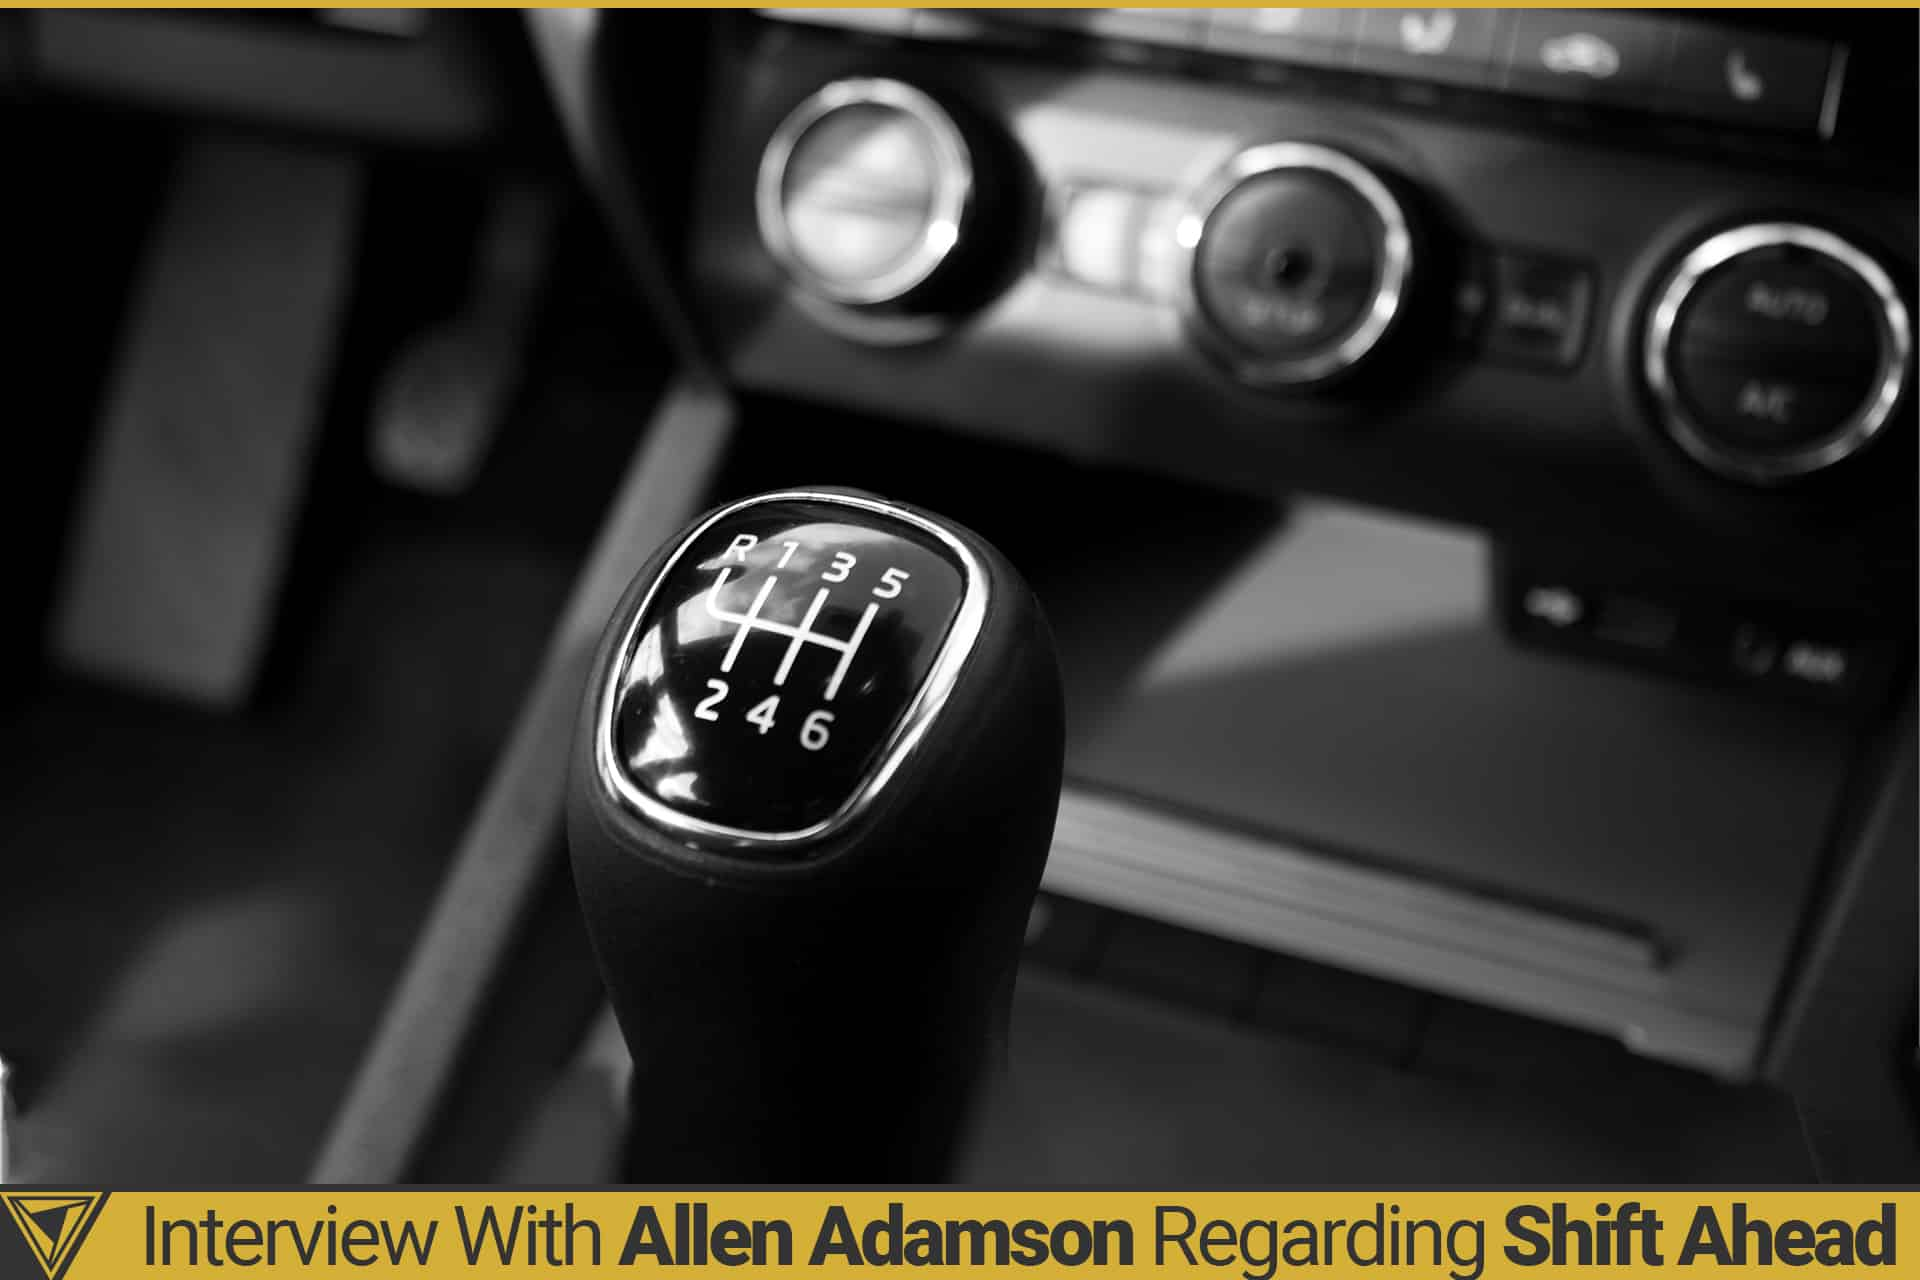 Interview With Allen Adamson